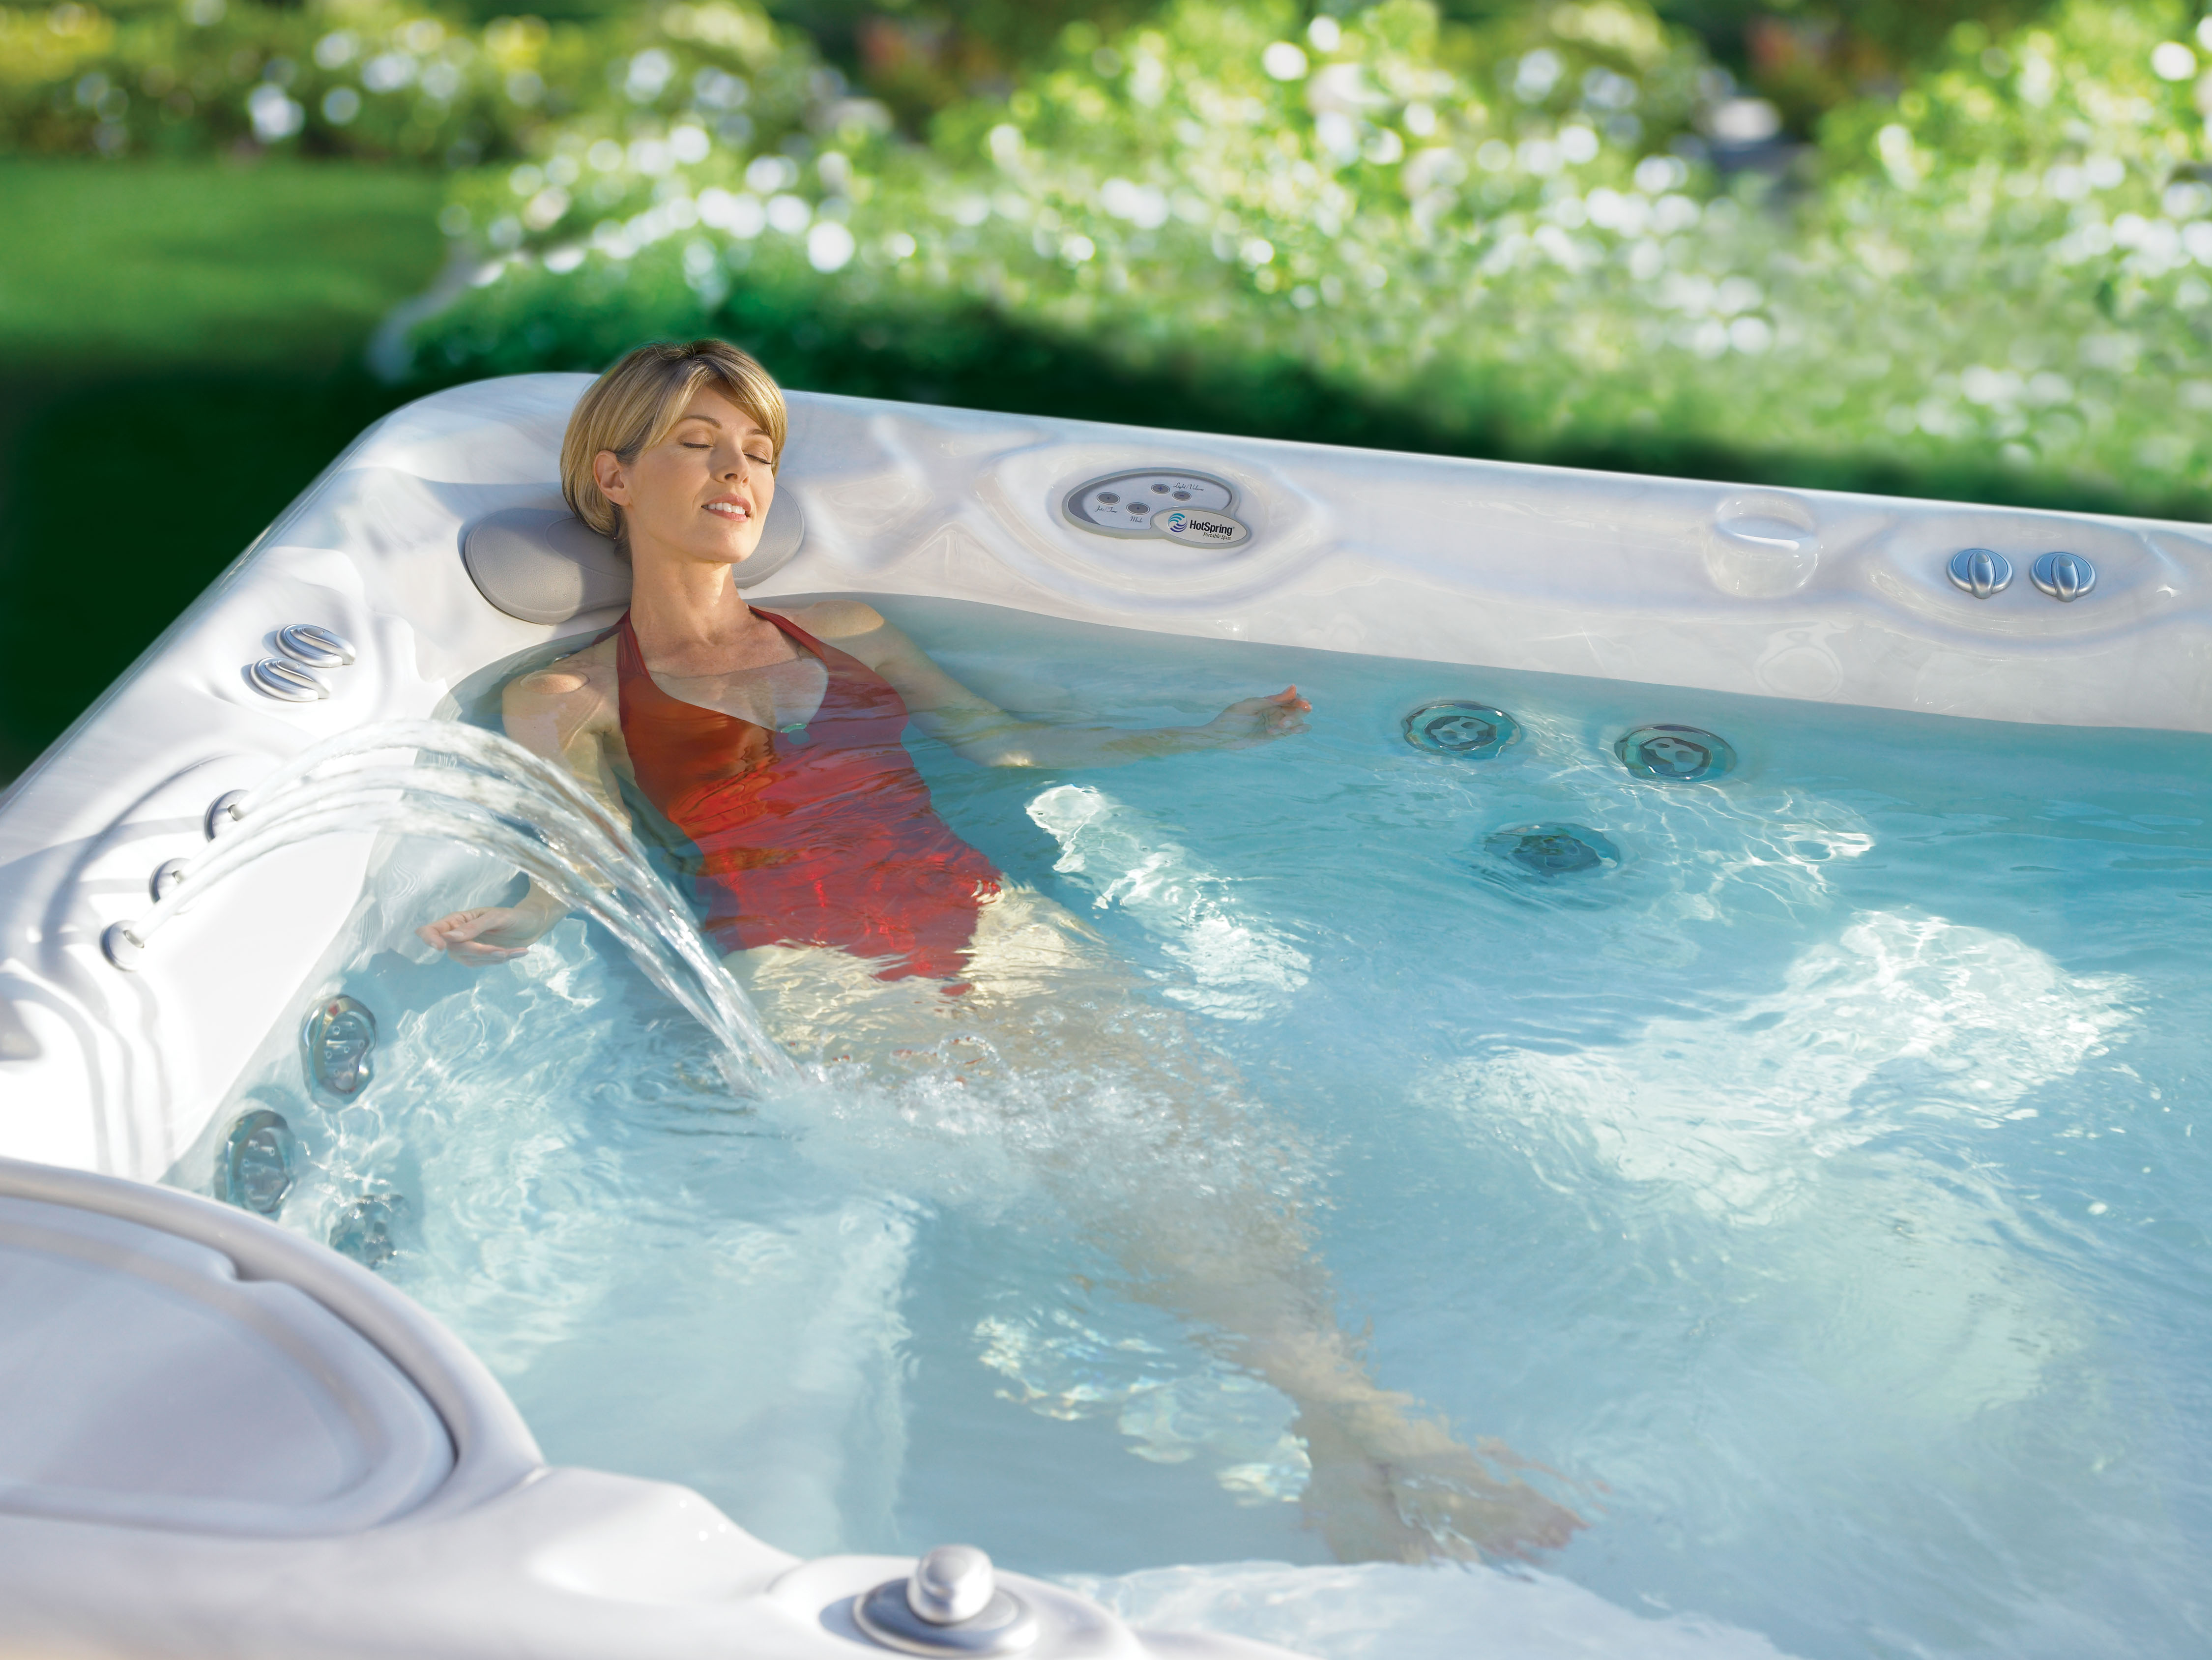 Snowbirds: Leaving for the Sun? How to Shut Your Hot Tub Down for the Winter